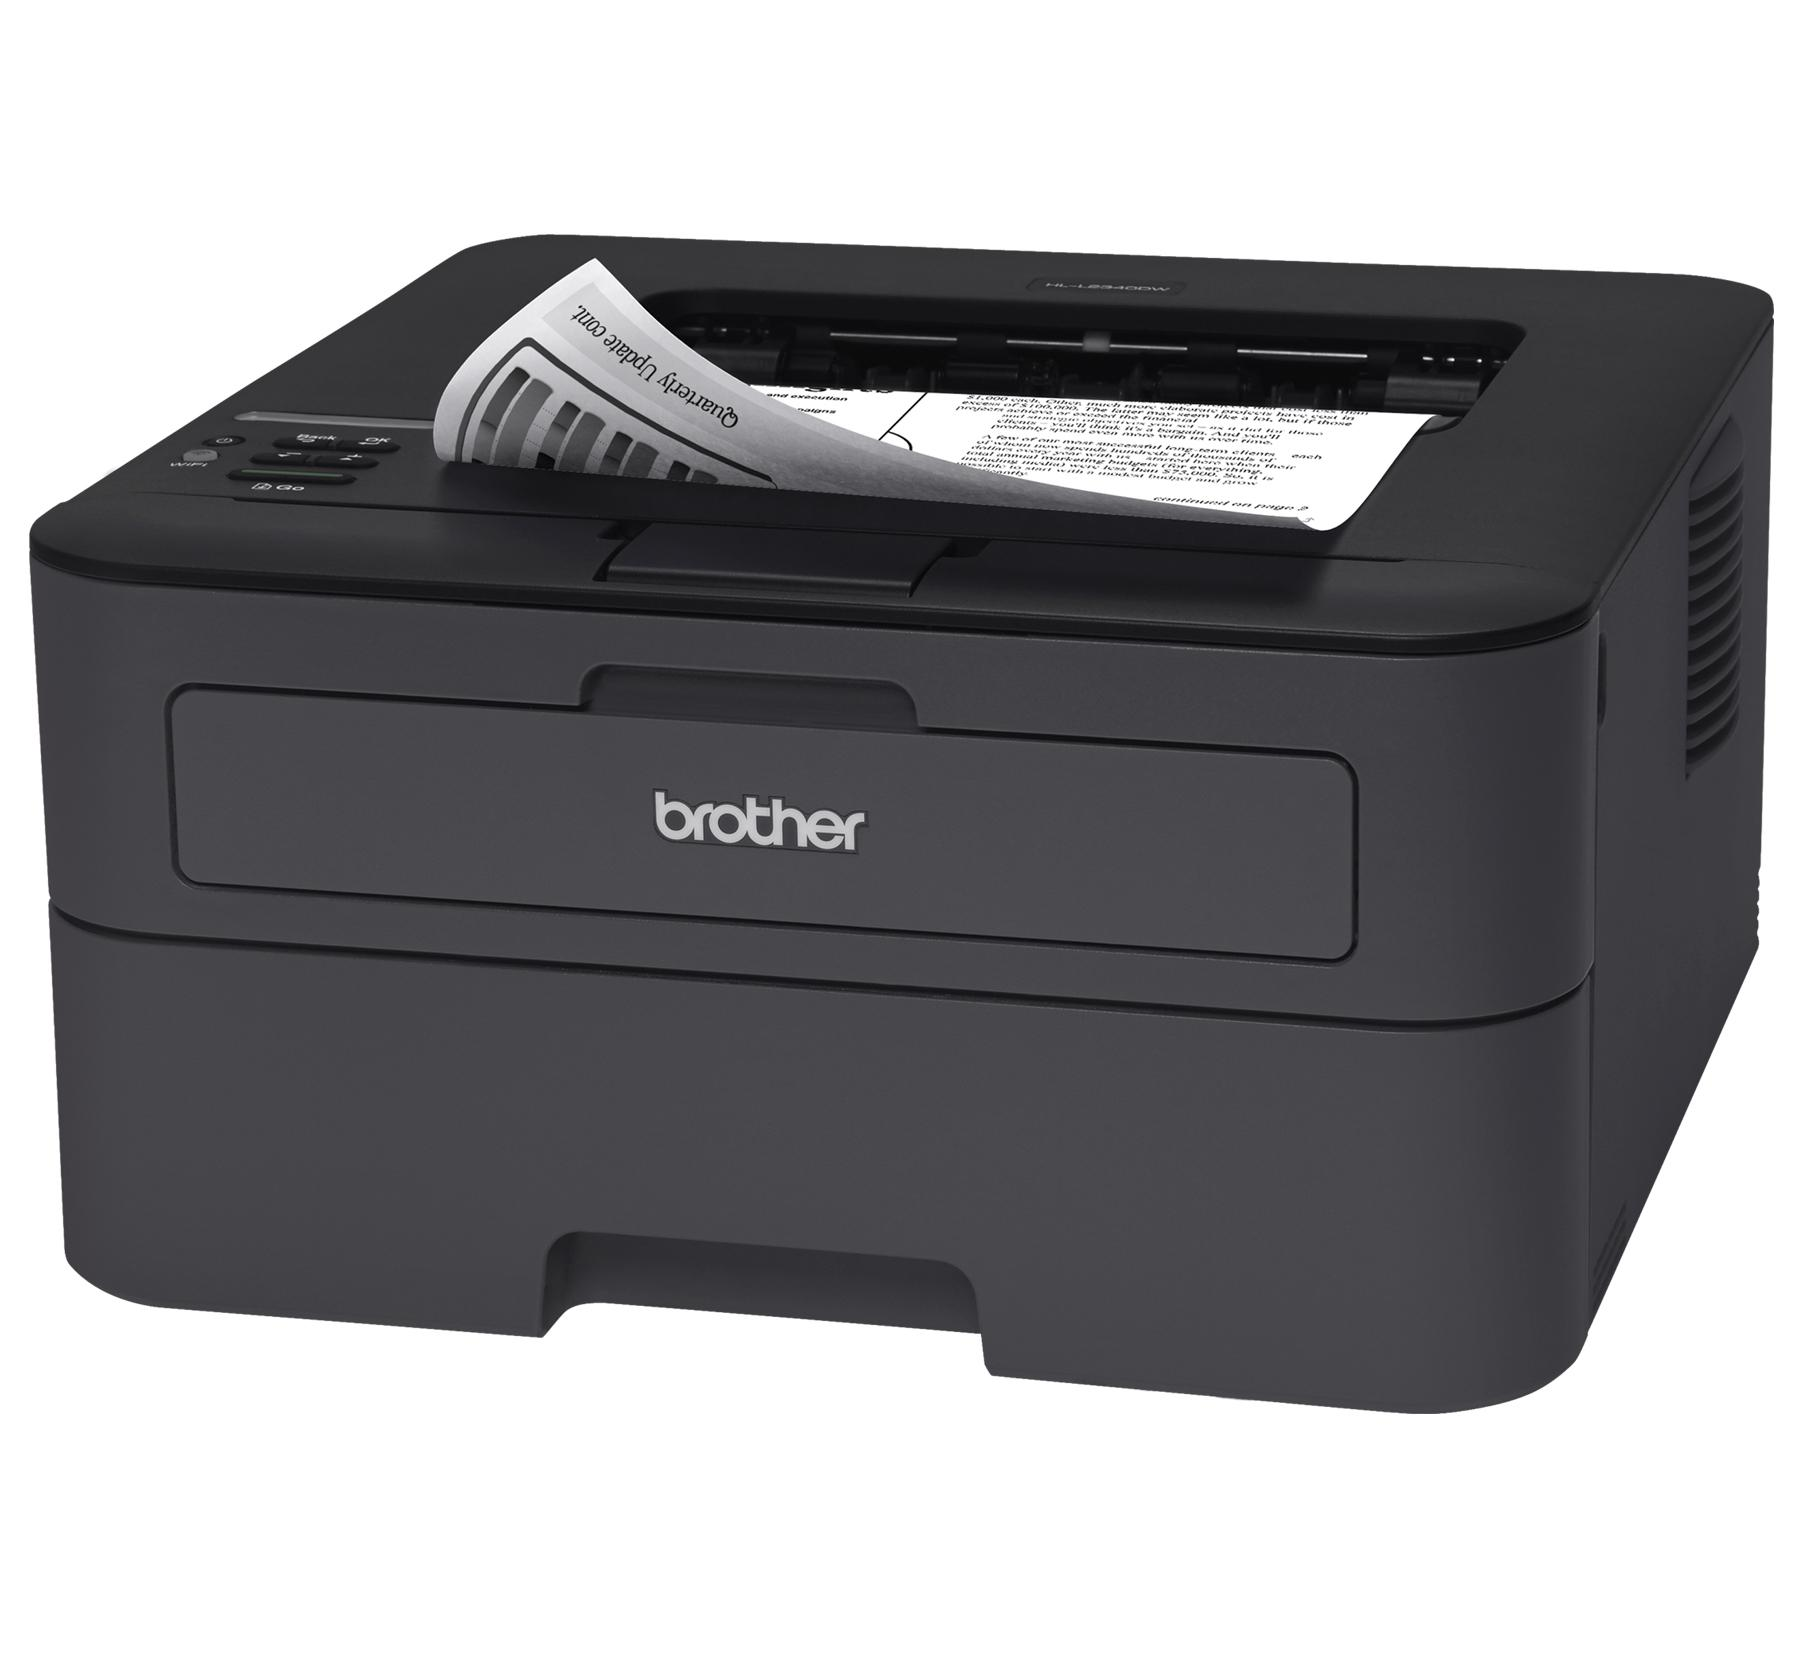 ПЕЧАТЬ ПРИНТЕР Brother Printer With Airprint And Google Cloud Print Tools And Toys